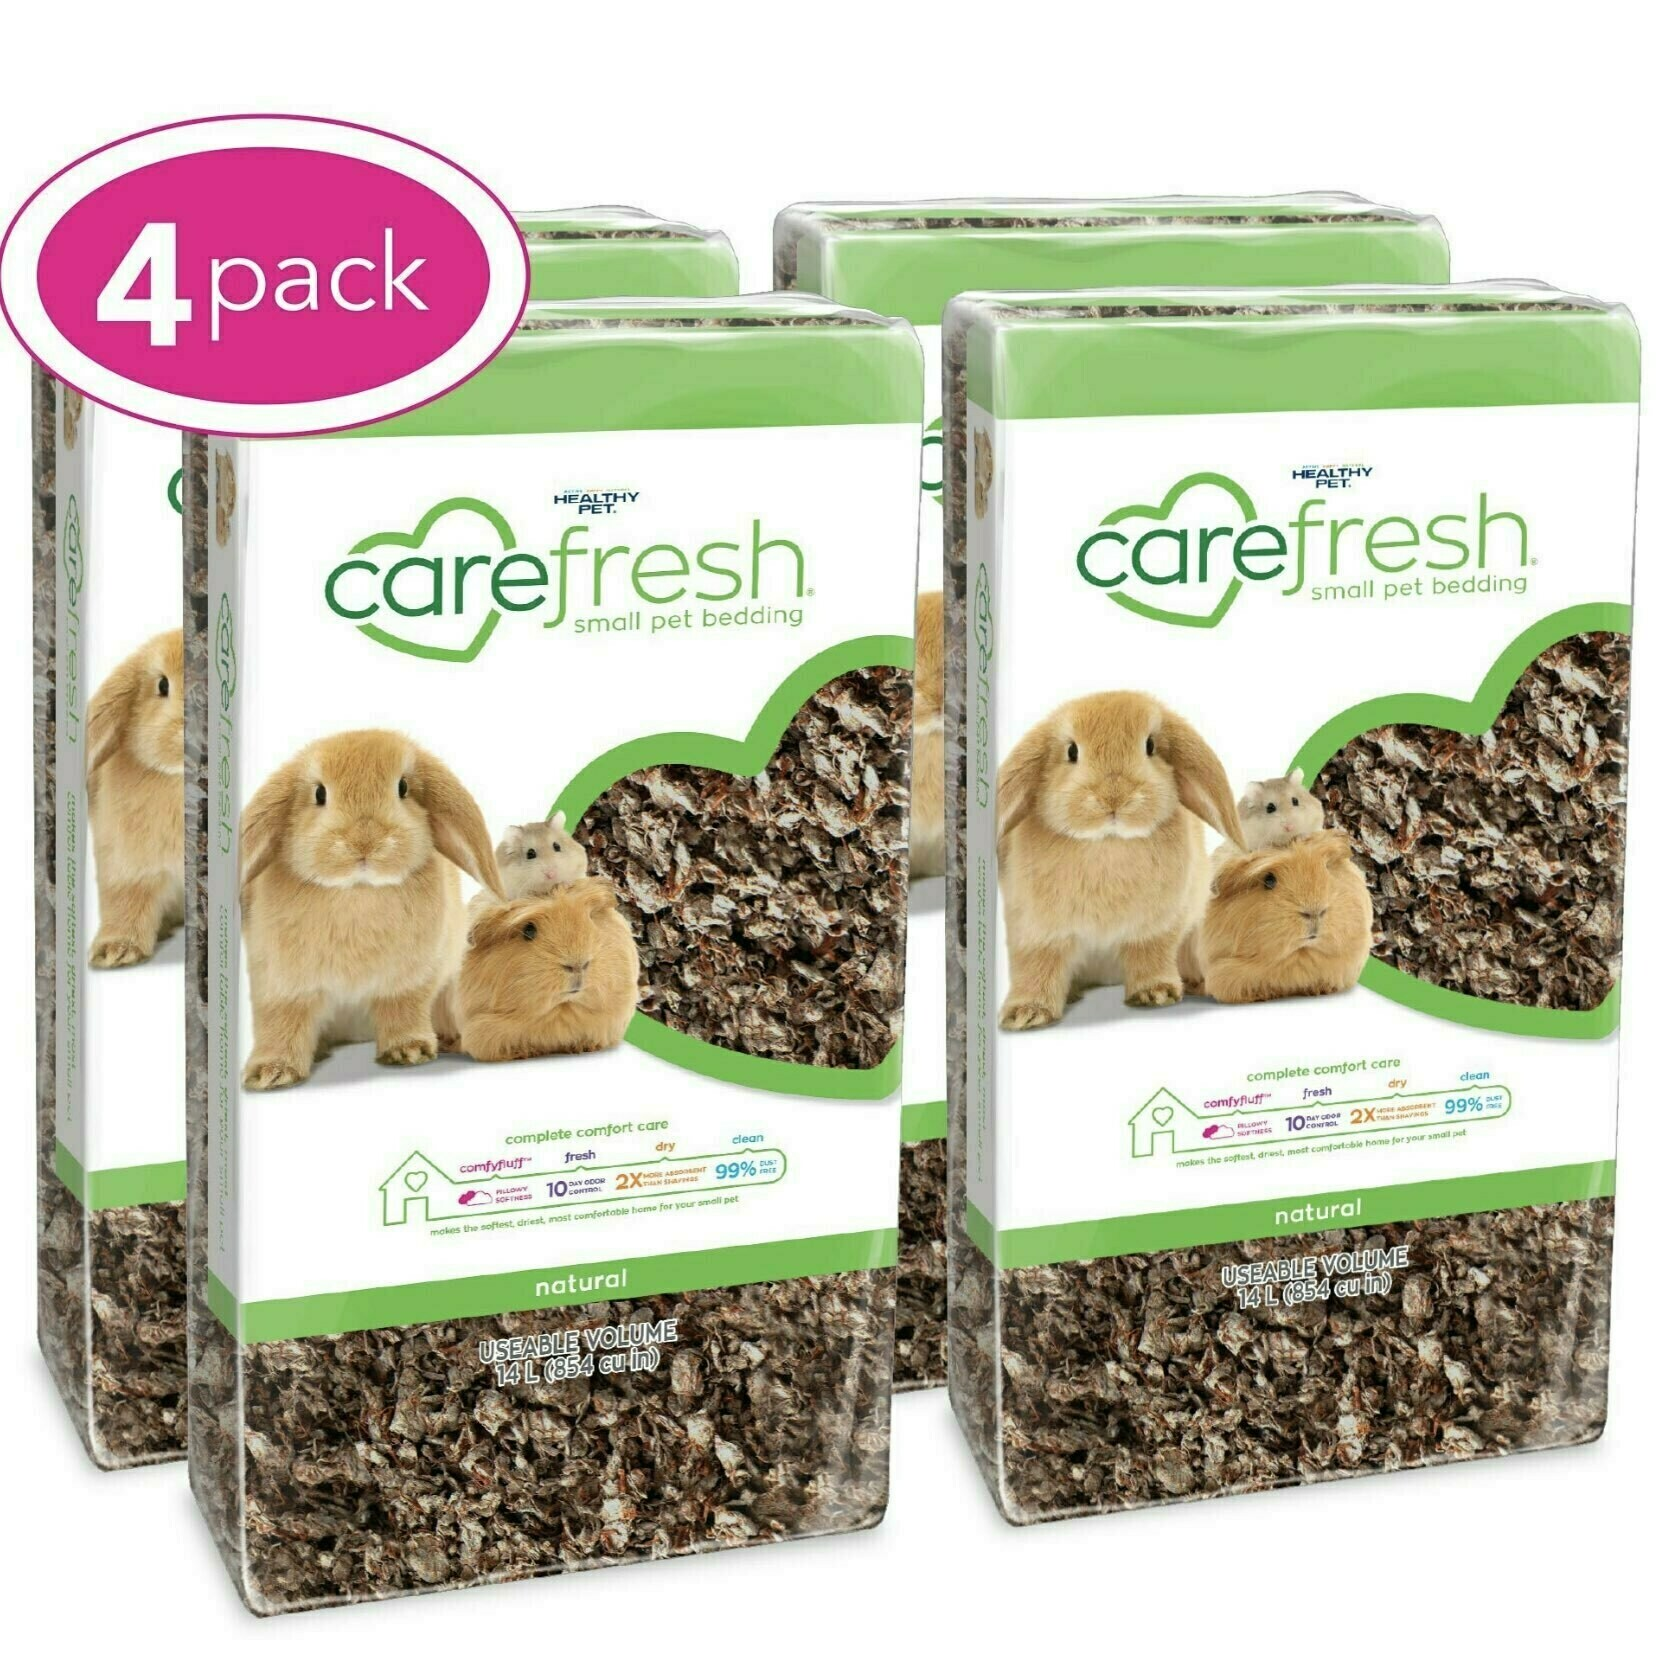 Carefresh cage bedding for the guinea pigs, aka GP toilet paper